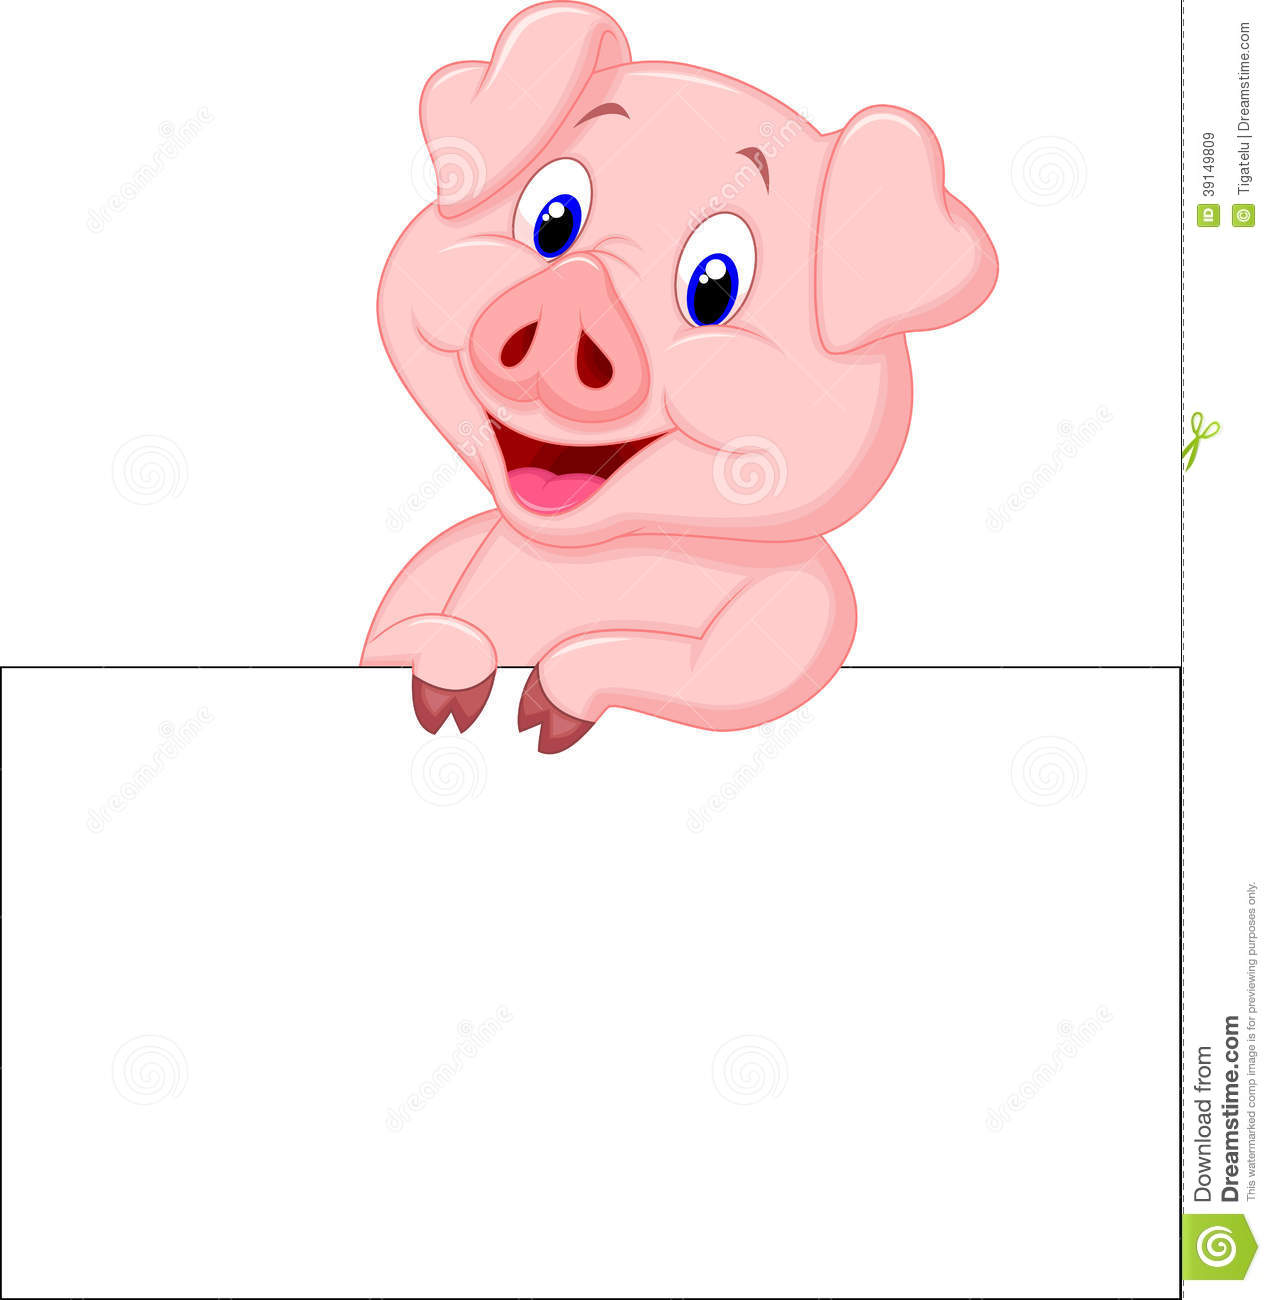 Cute Pig Cartoon Holding Blank Sign Stock Vector - Image: 39149809